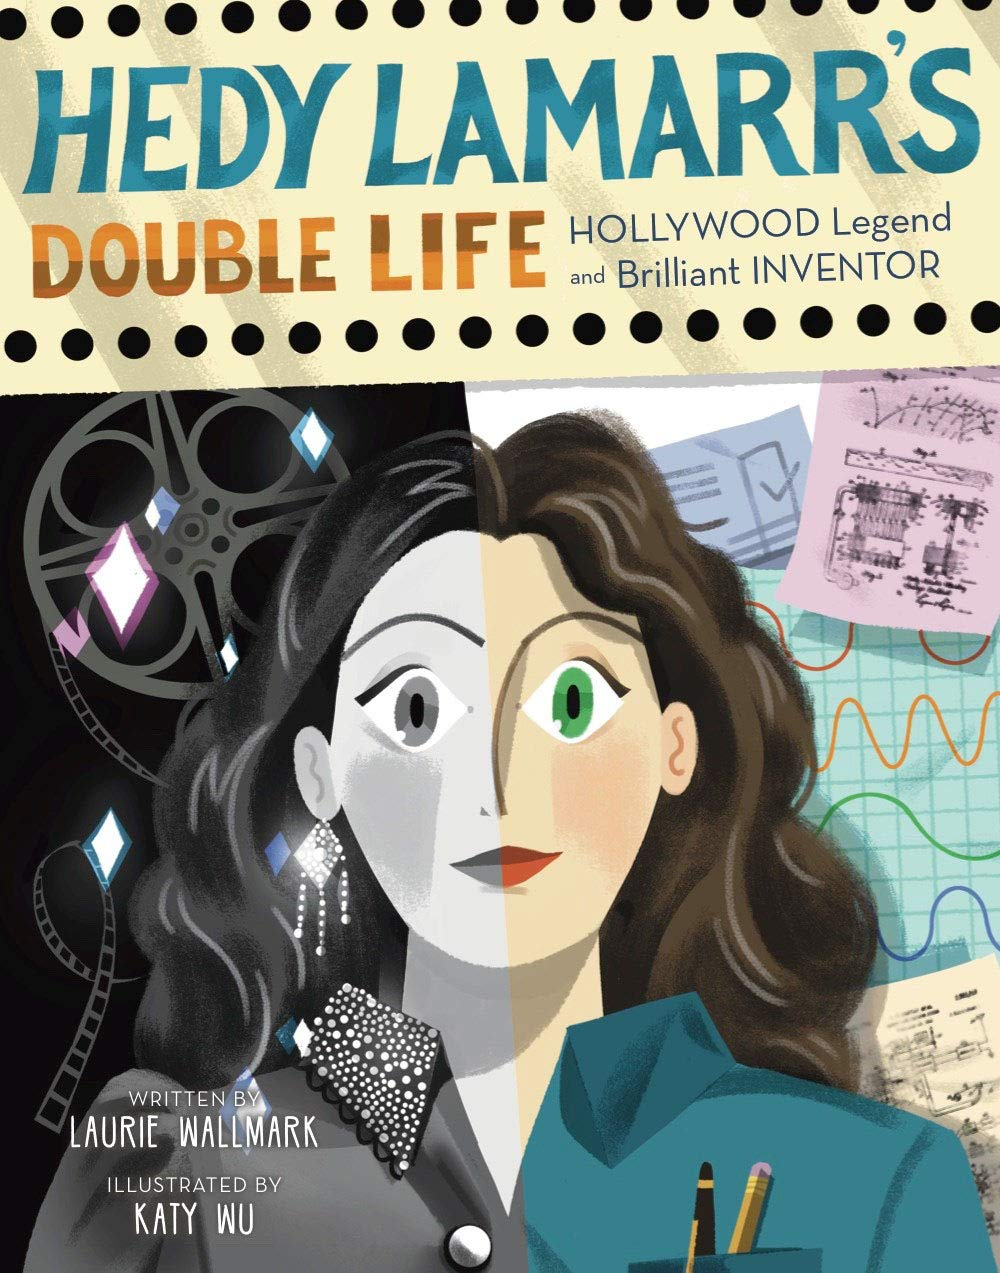 celebrate-picture-books-picture-book-review-hedy-lamarr's-double-life-cover